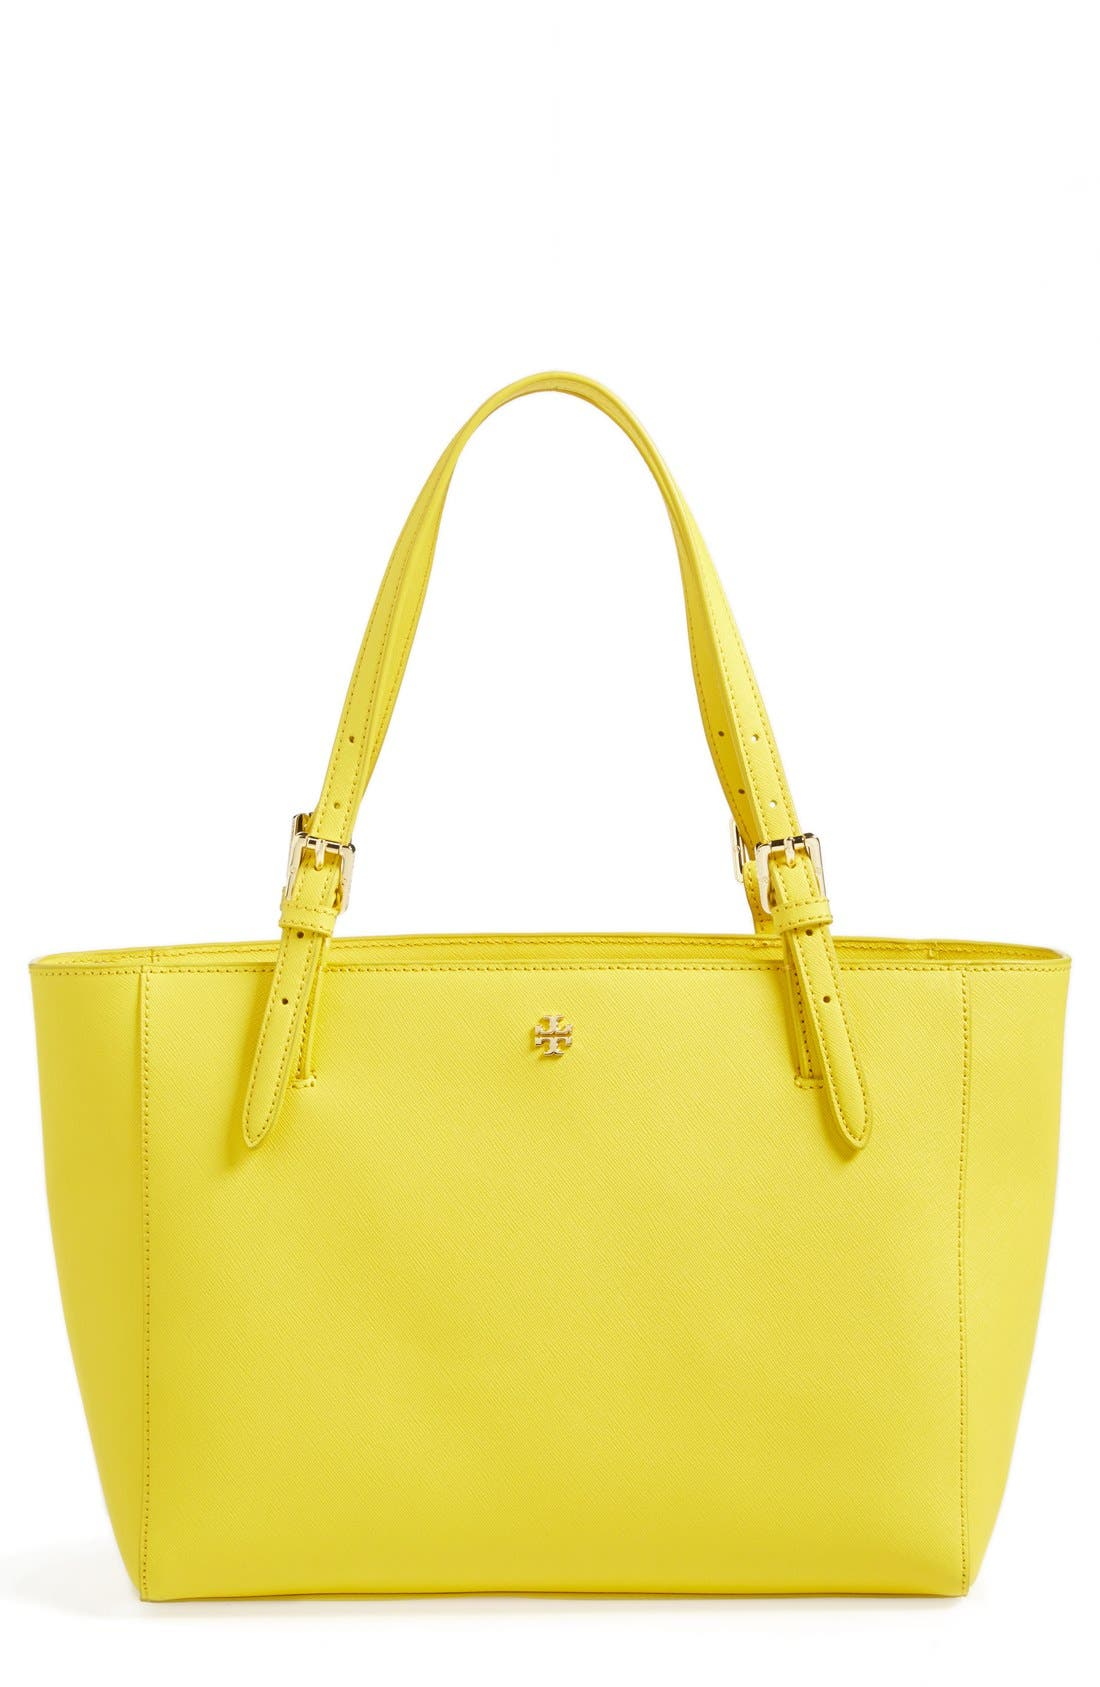 Main Image - Tory Burch 'Small York' Leather Tote